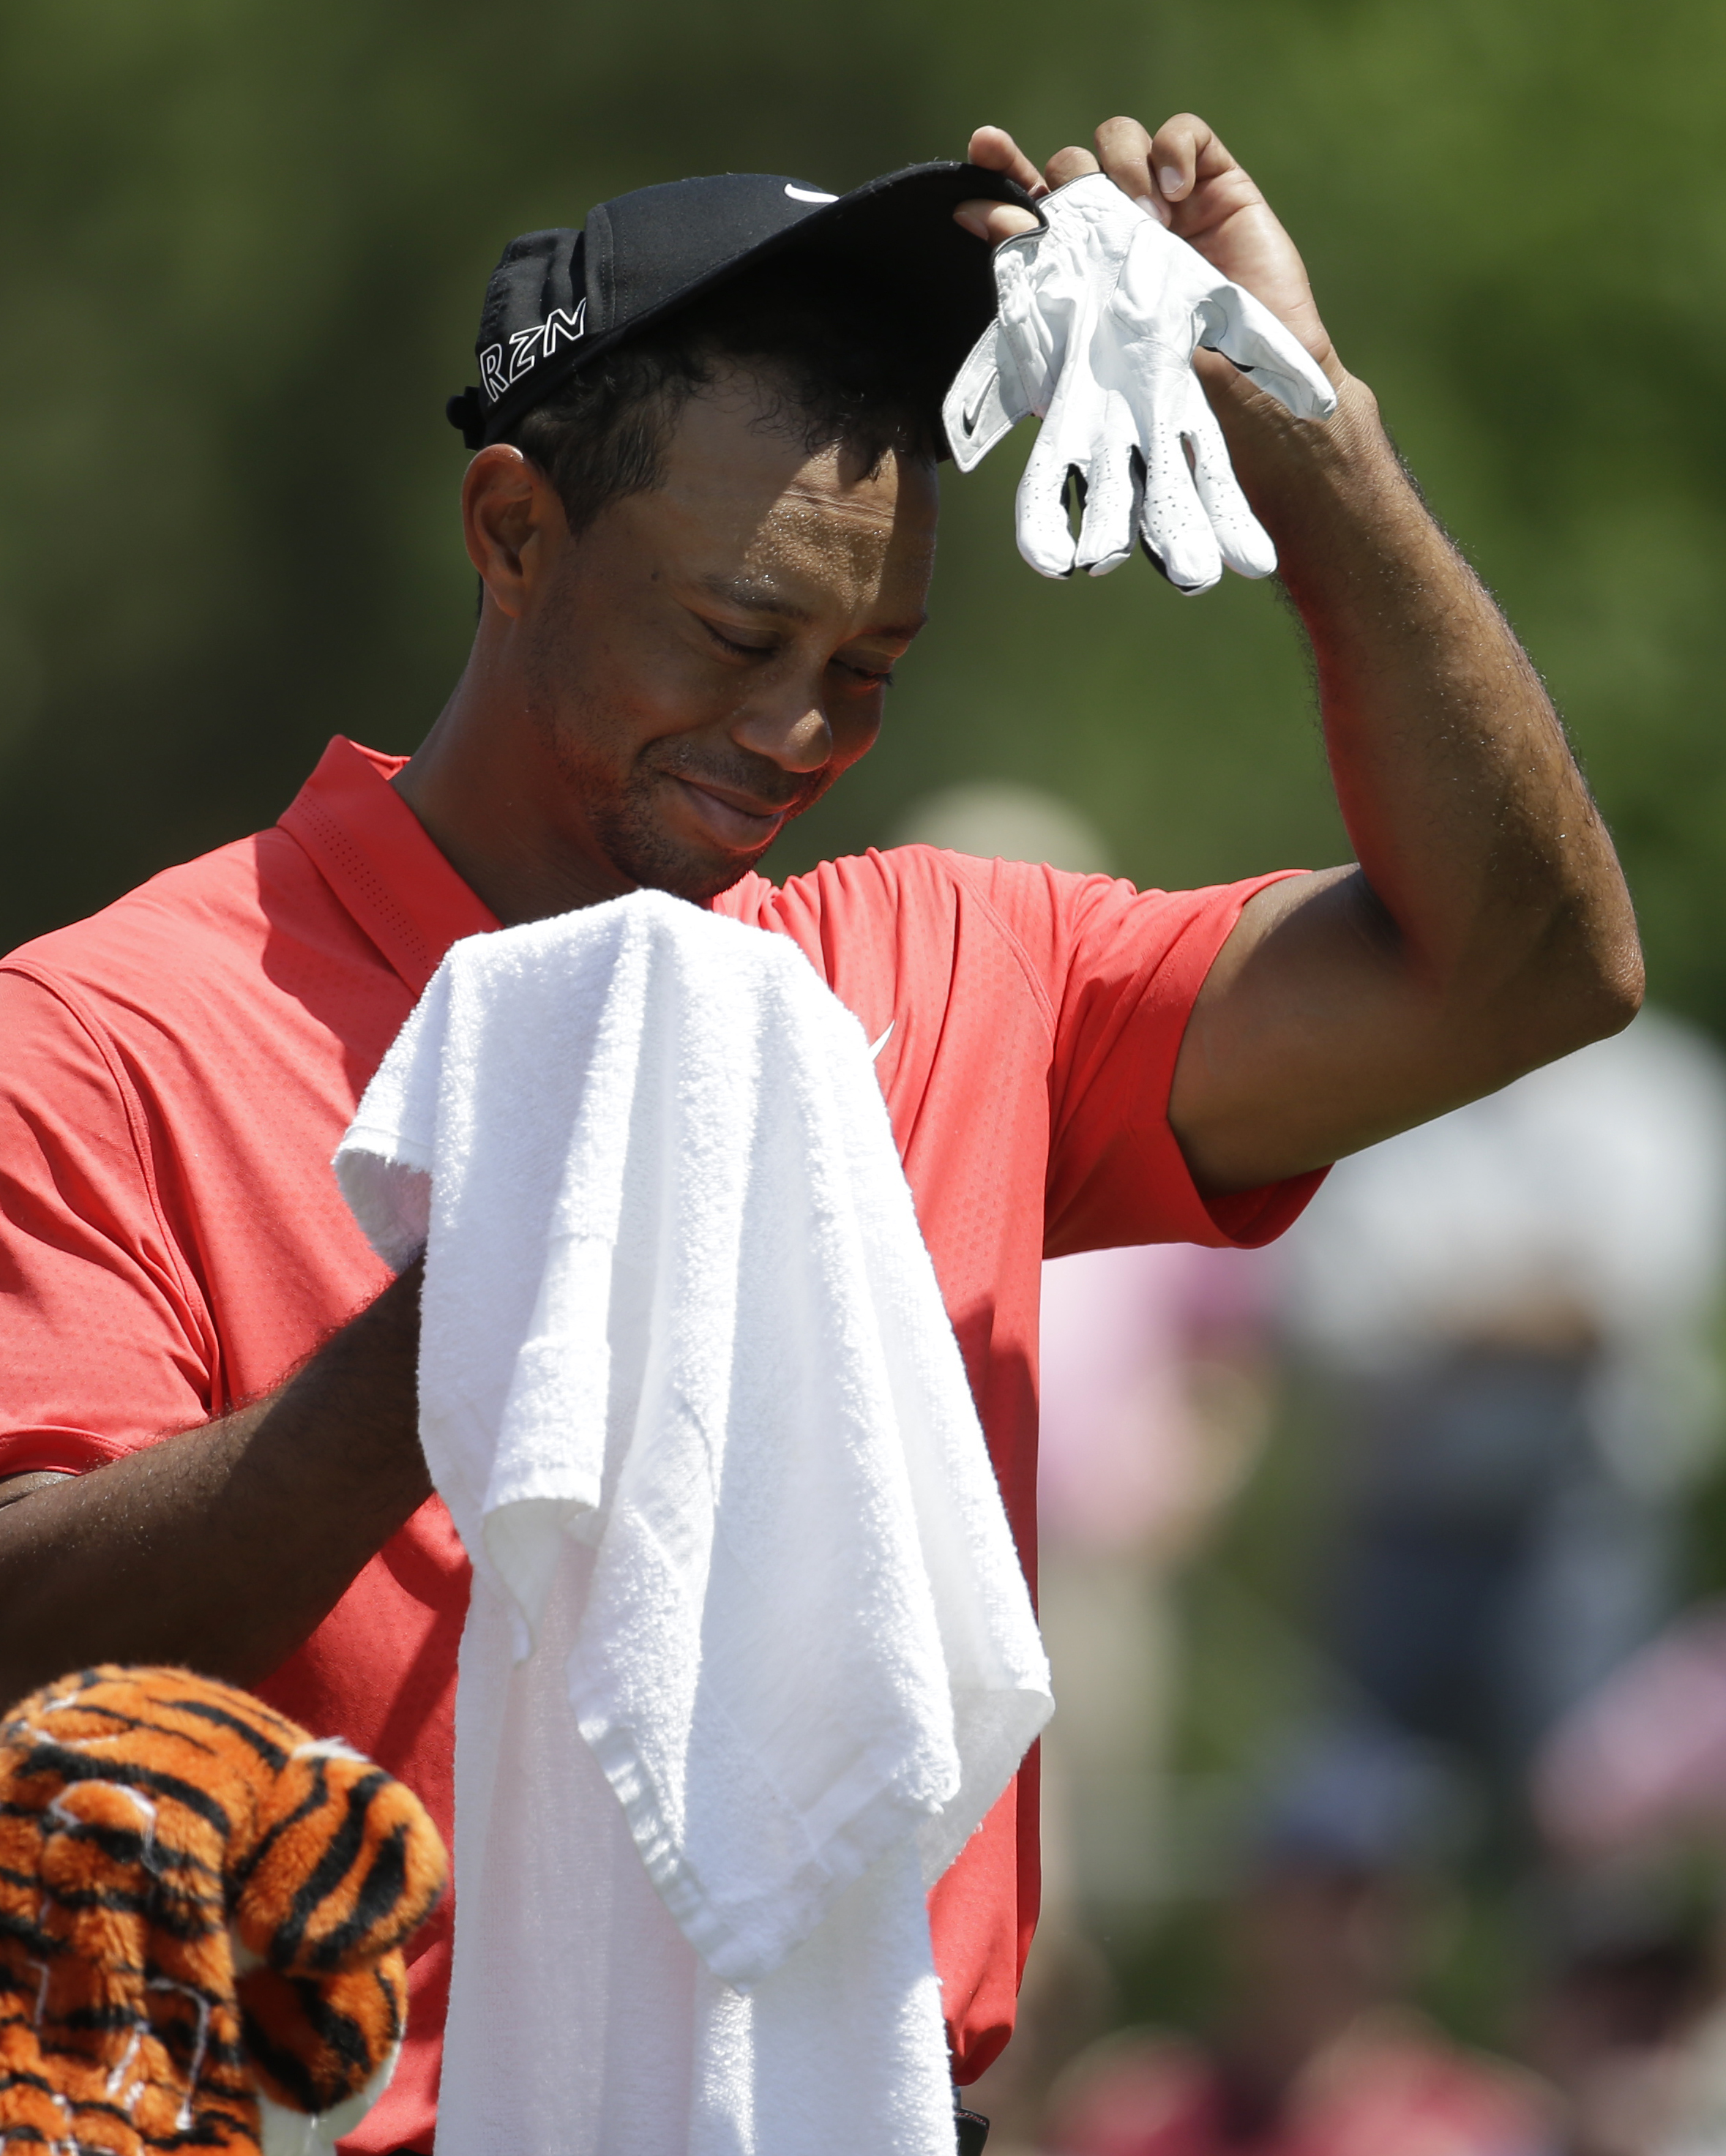 Tiger Woods wipes his face before hitting from the 16 tee during the final round of The Players Championship golf tournament, Sunday, May 10, 2015, in Ponte Vedra Beach, Fla. (AP Photo/Lynne Sladky)